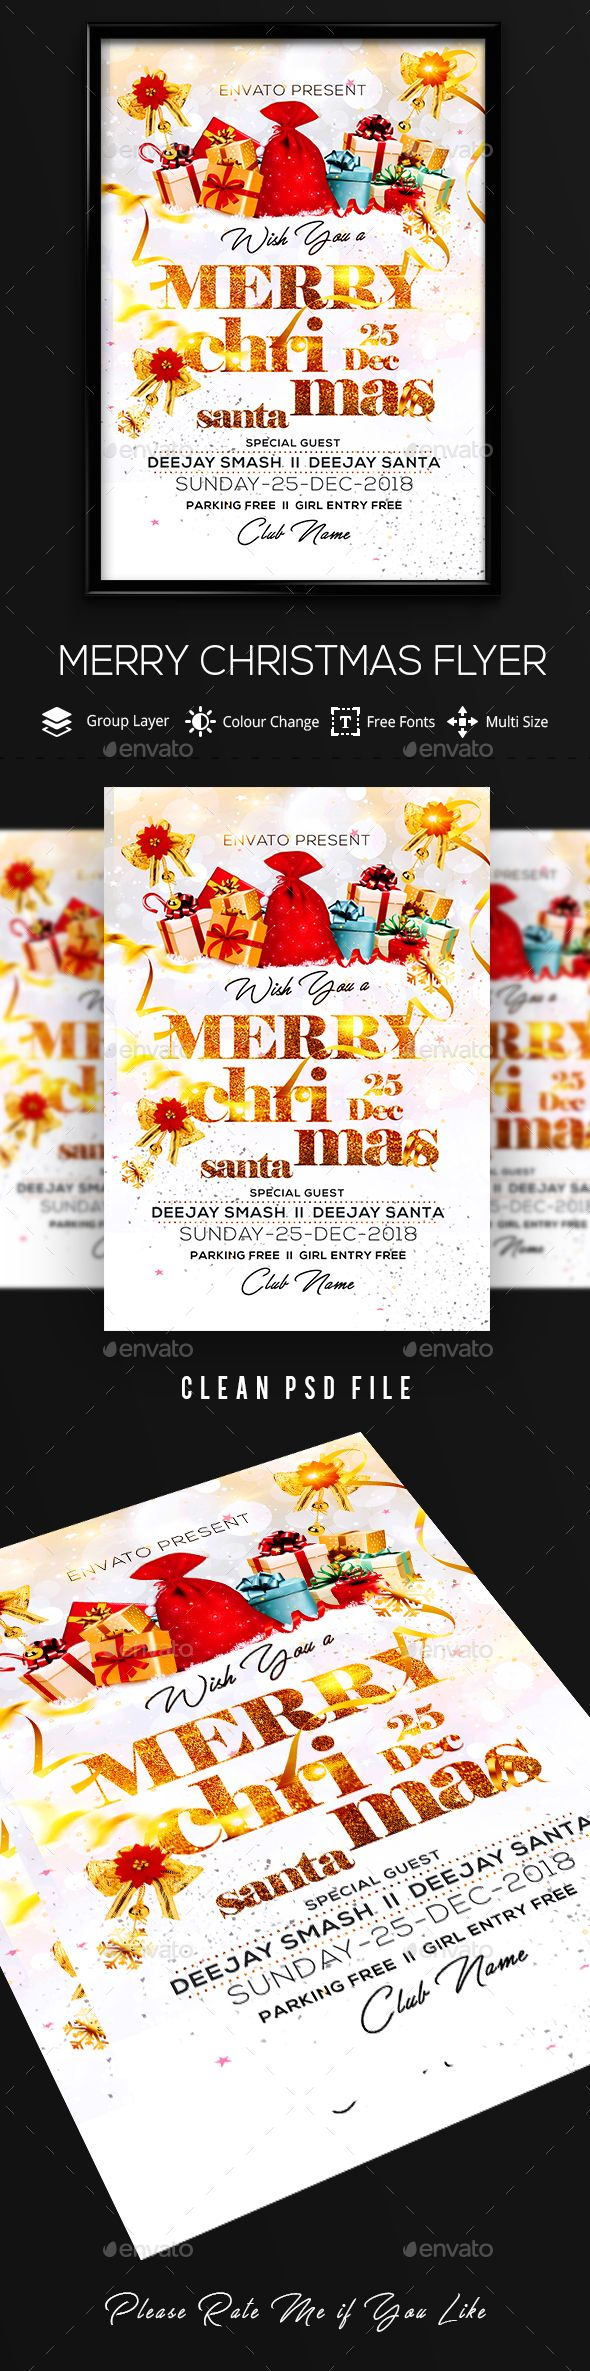 free ecard christmas party invitations%0A Christmas Flyer